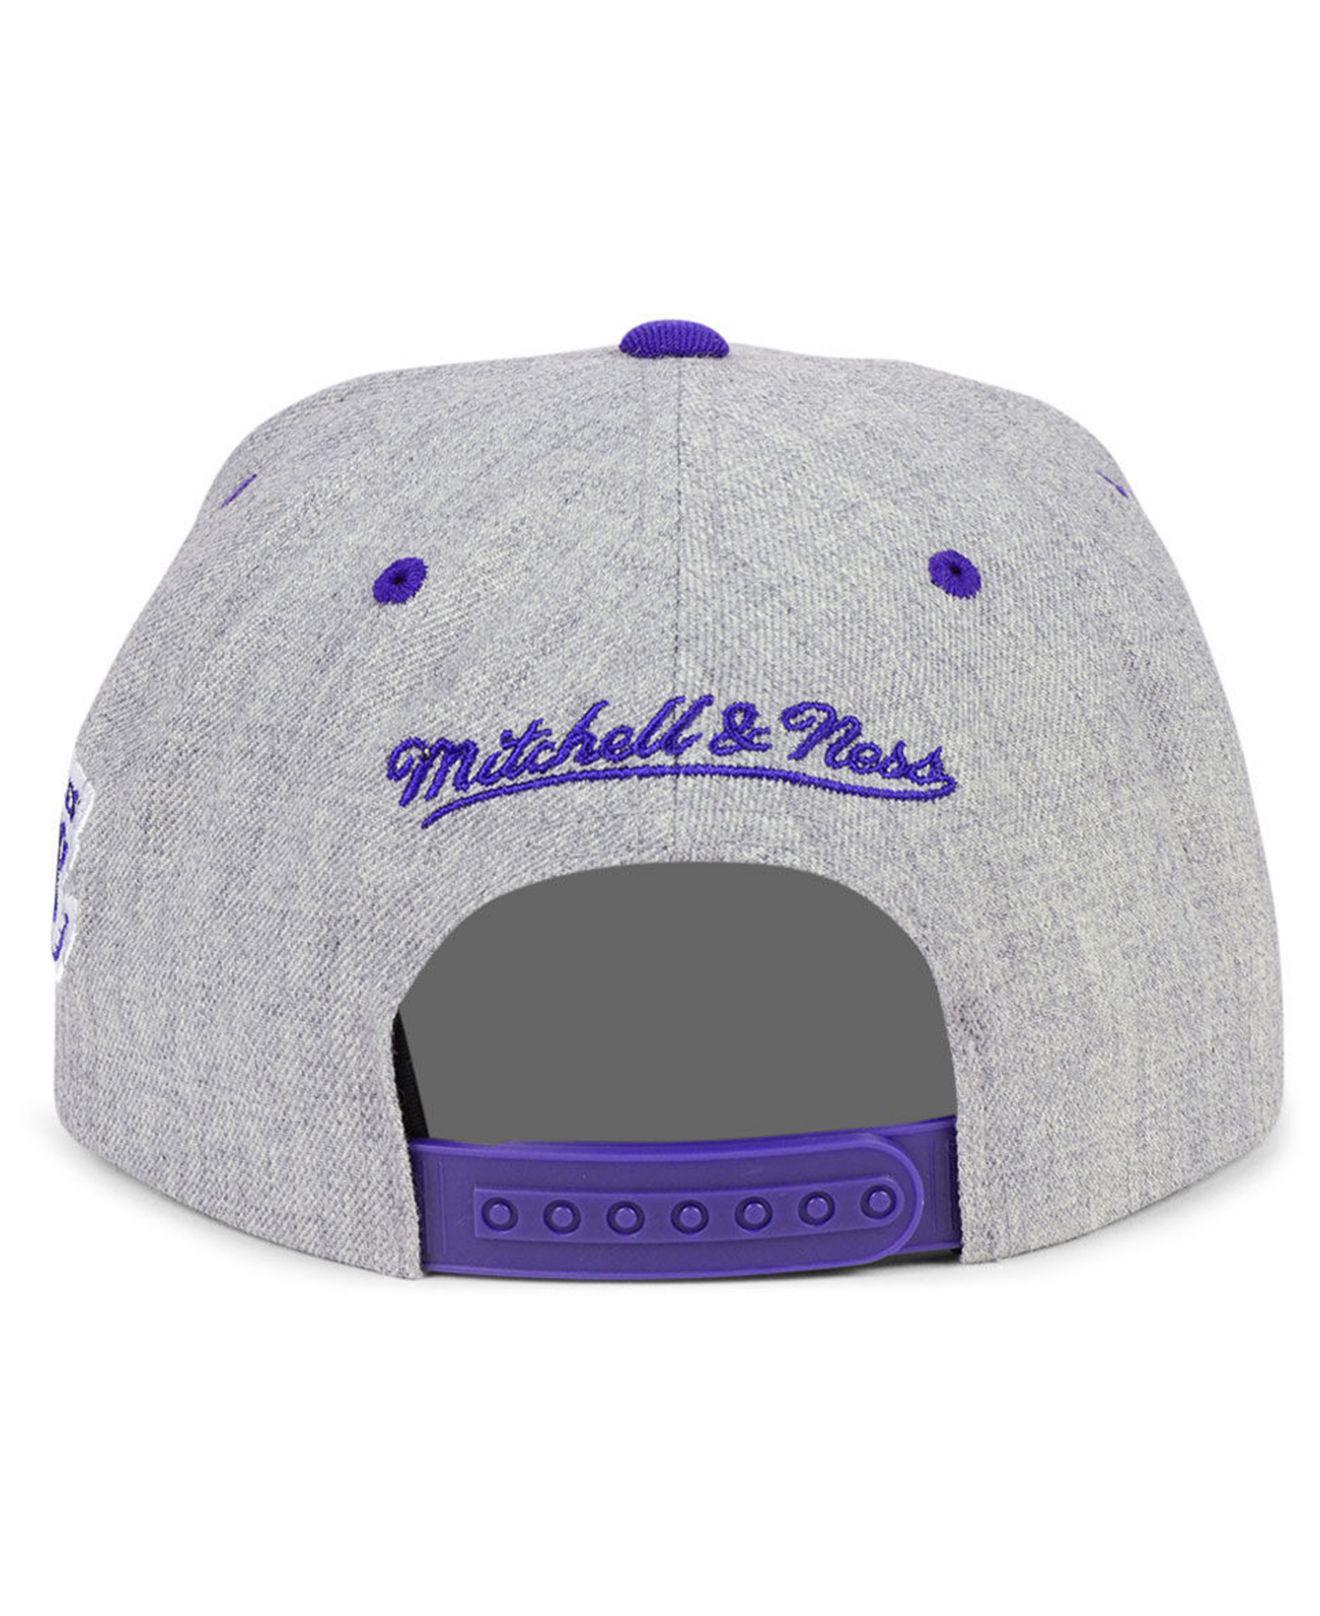 0aafb73ad6326 Mitchell   Ness Los Angeles Lakers Side Panel Cropped Snapback Cap ...